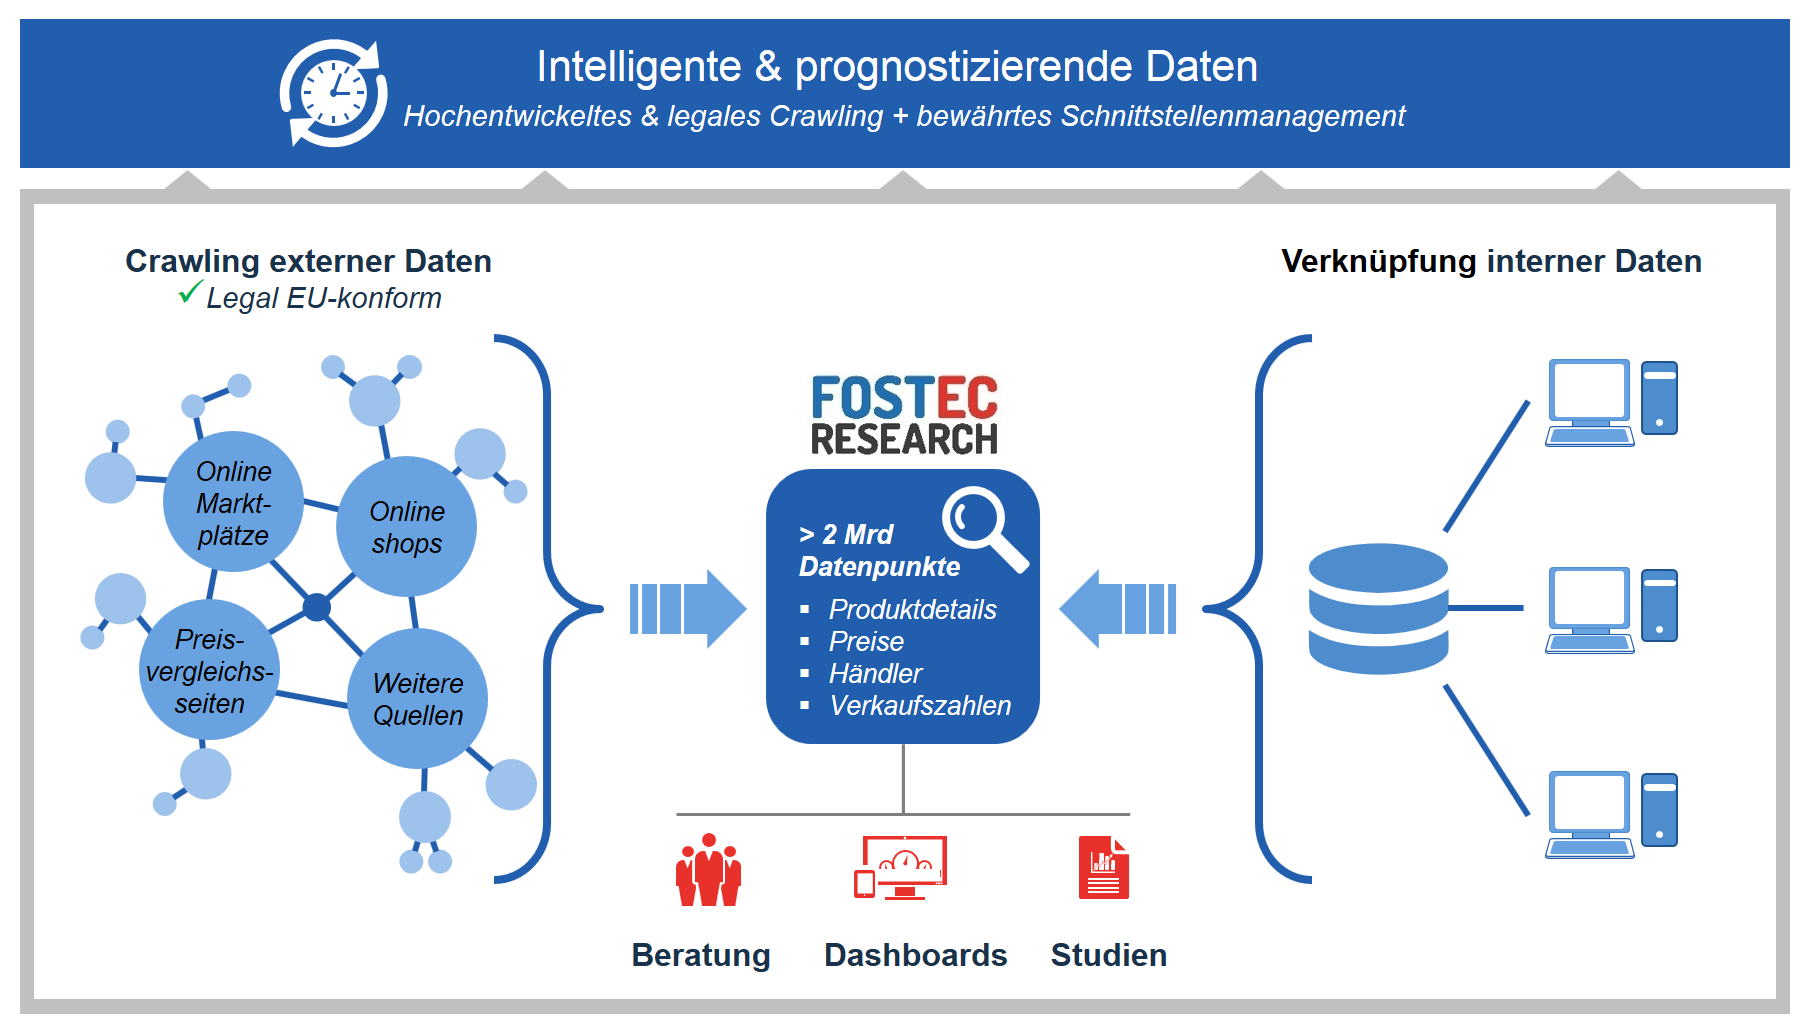 FOSTEC-Research-Data